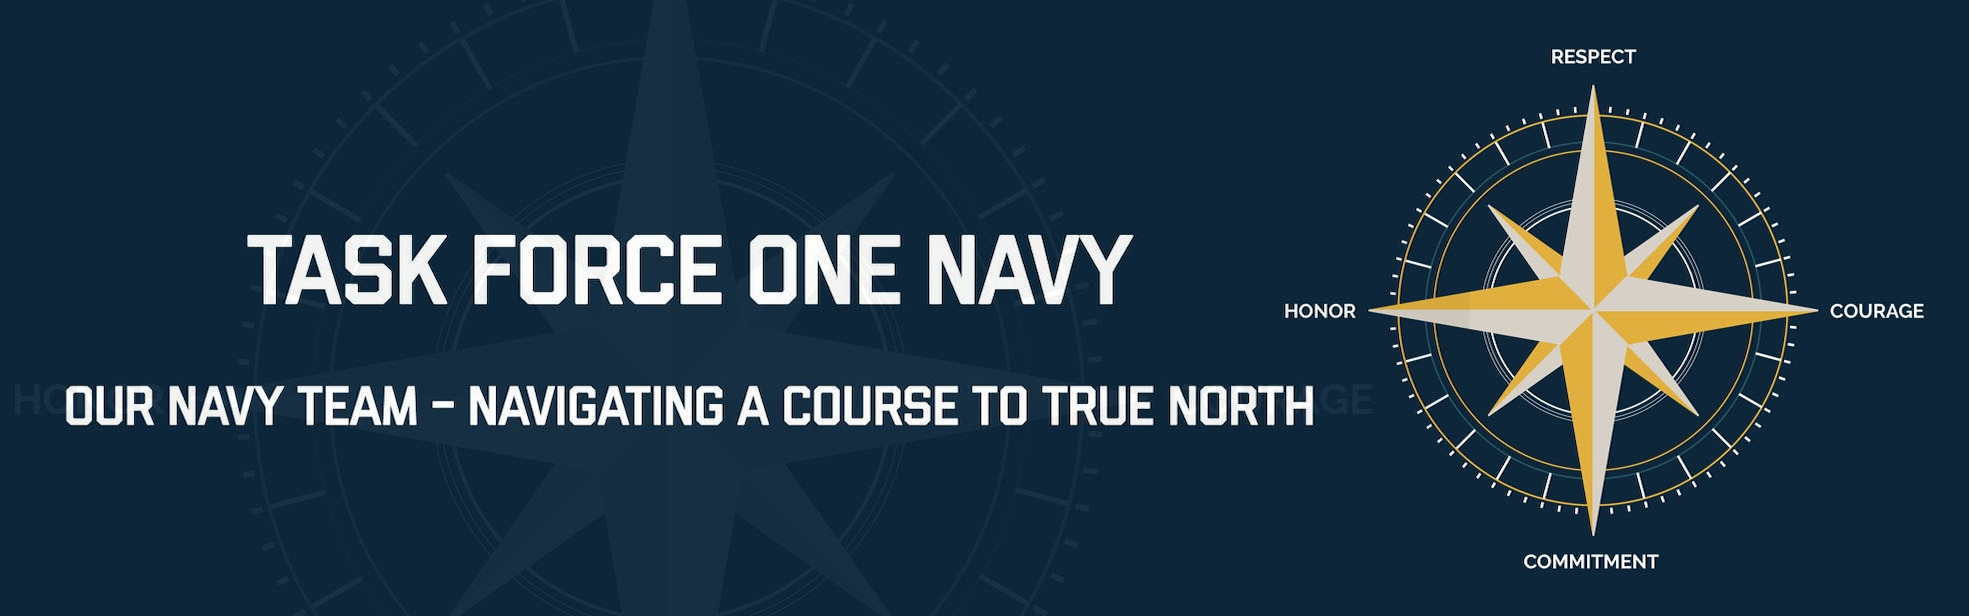 Task Force 1 Navy Web Banner